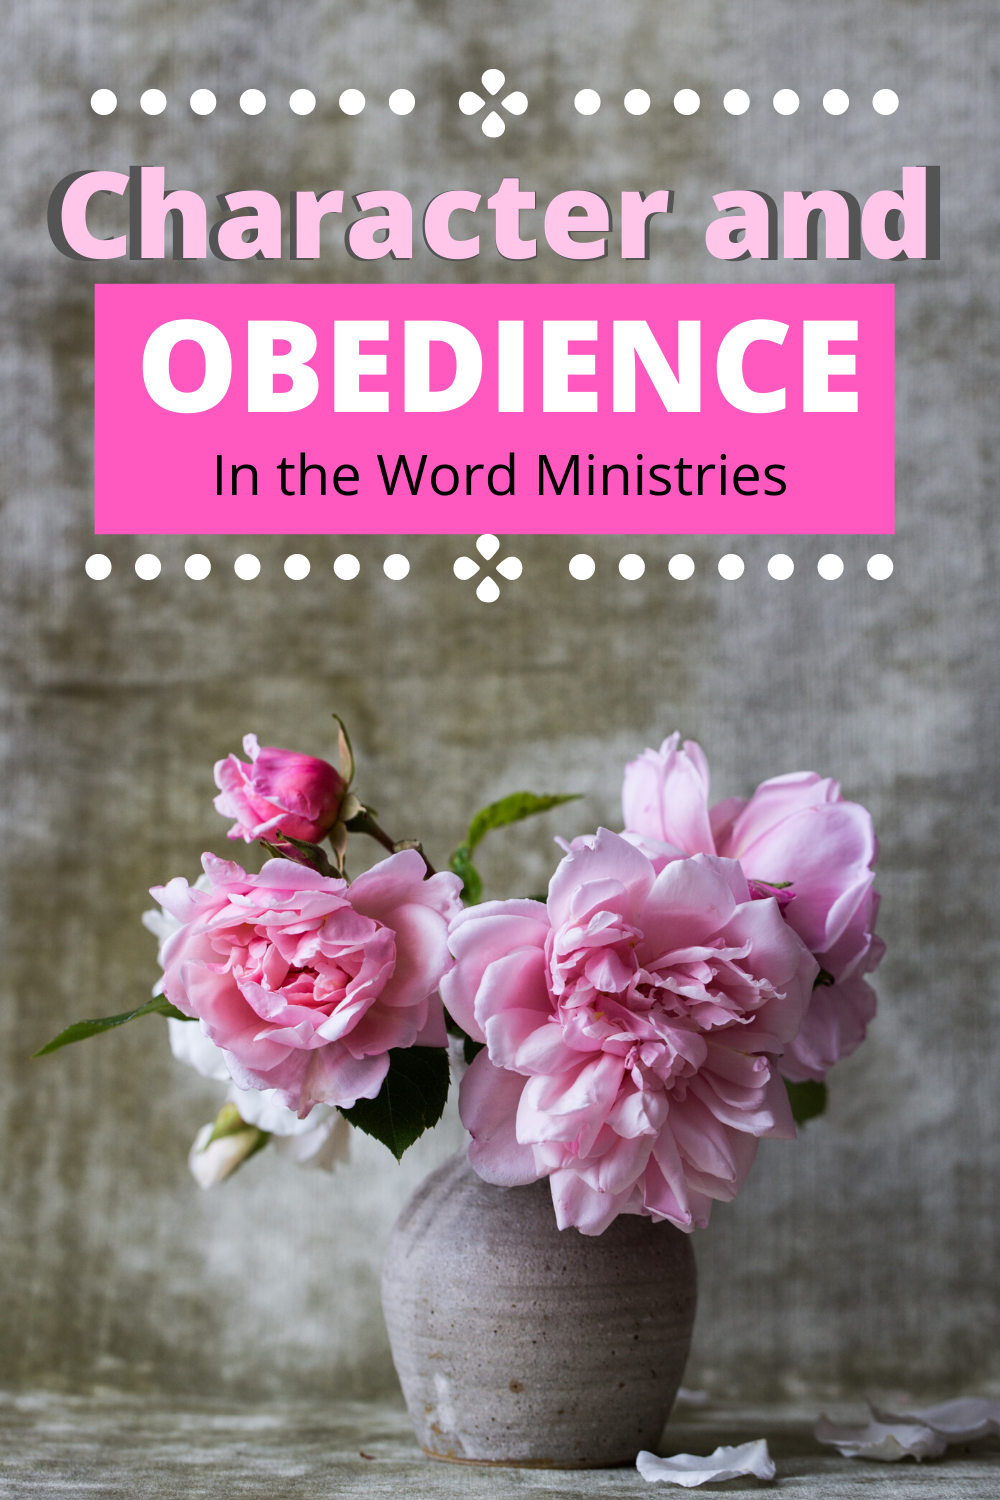 A thought on obedience for Christians